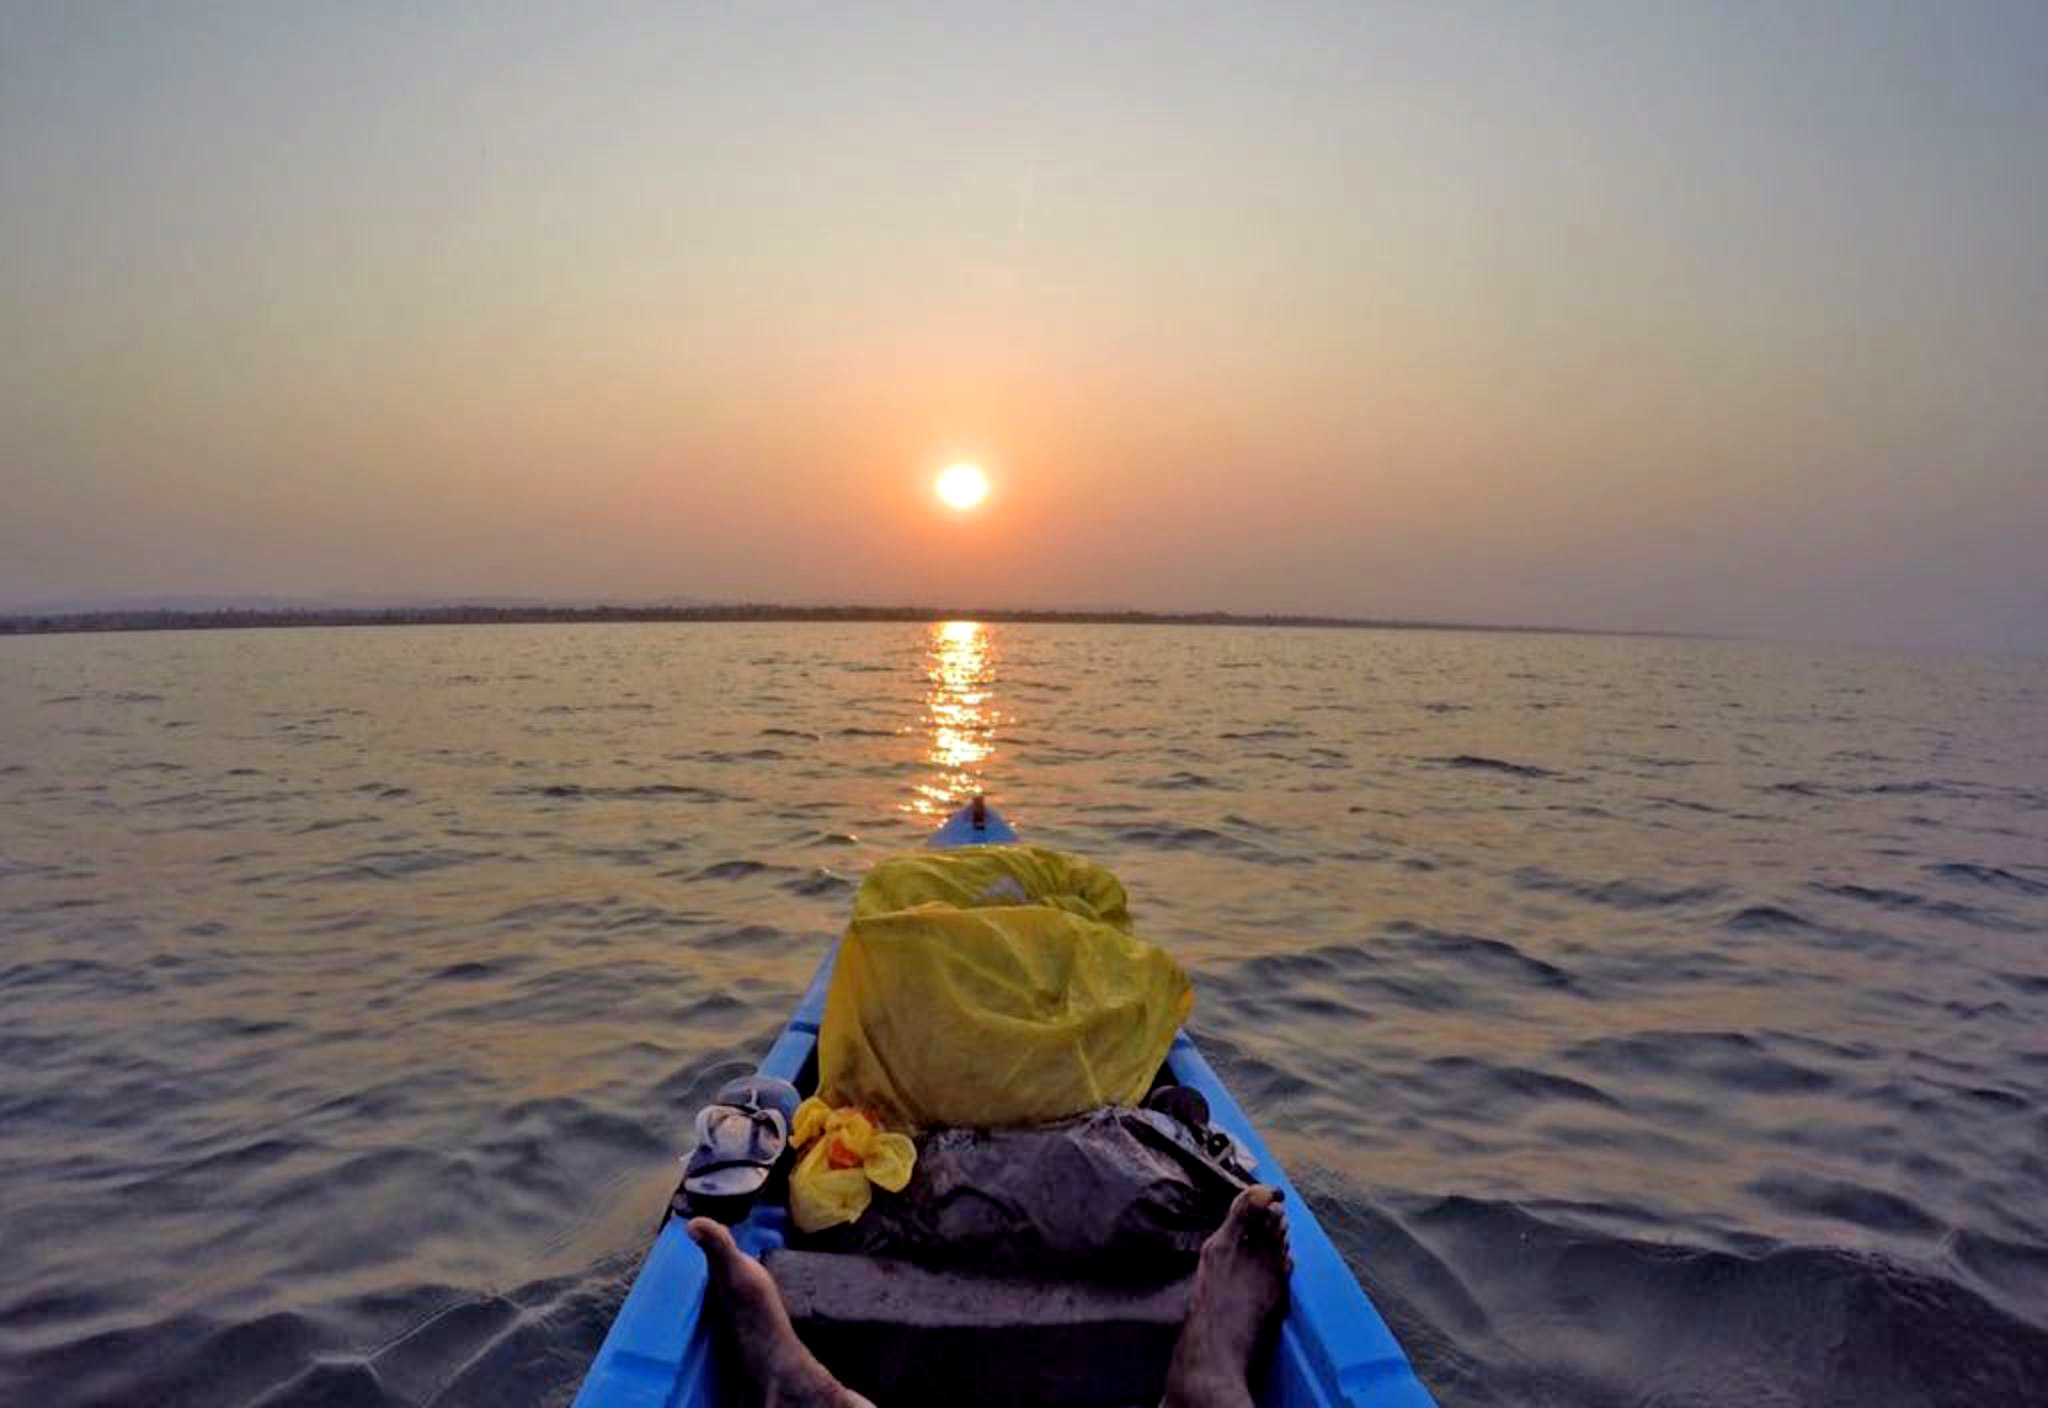 Kayaking the length of Lake Malawi, Africa by Mario Rigby